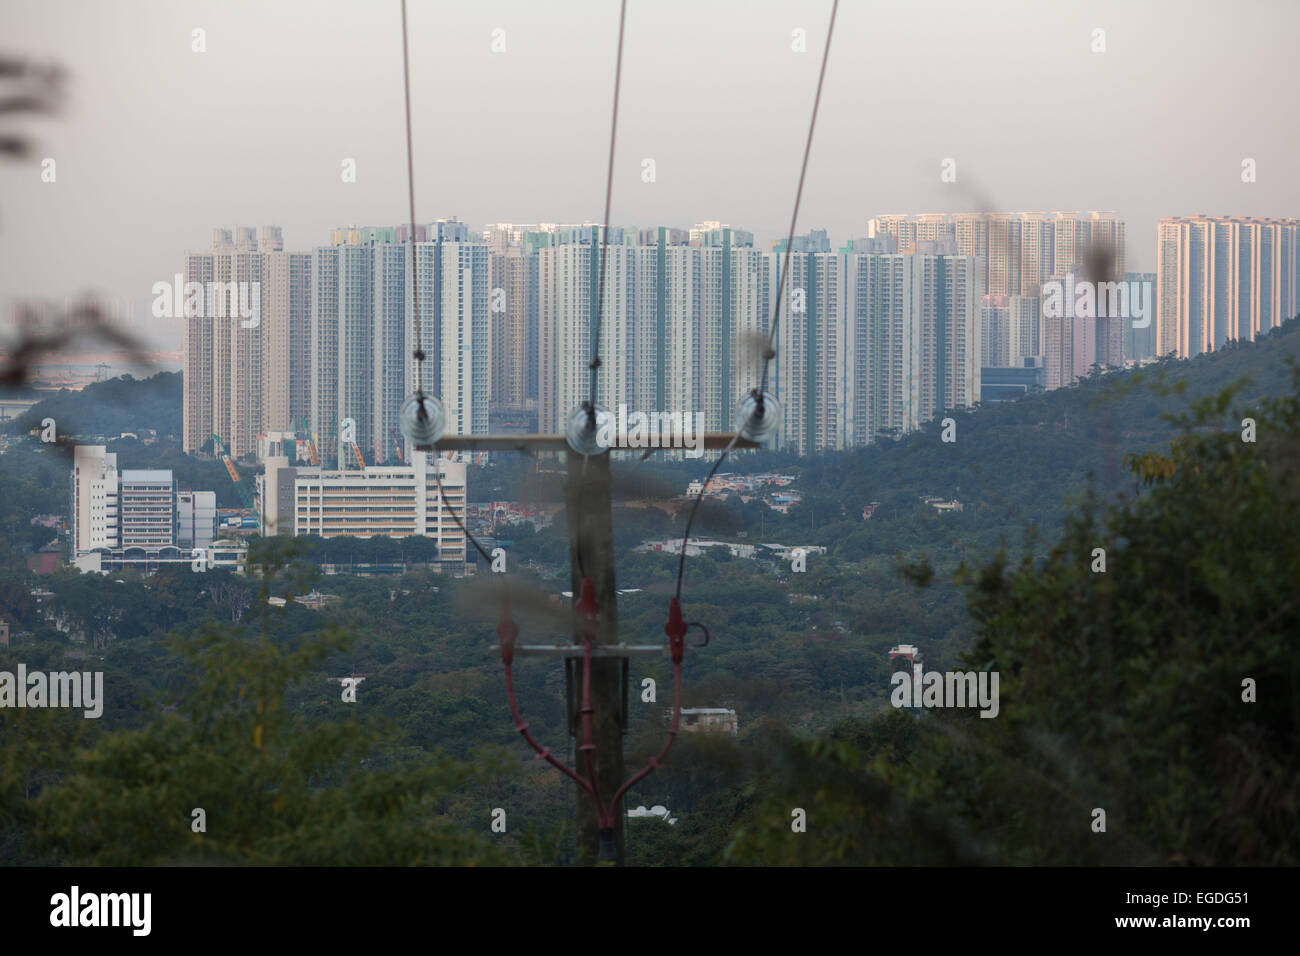 Tung Chung city is part of Hong Kong and is a giant cluster of tall tower blocks. It is surrounded by green hills. - Stock Image